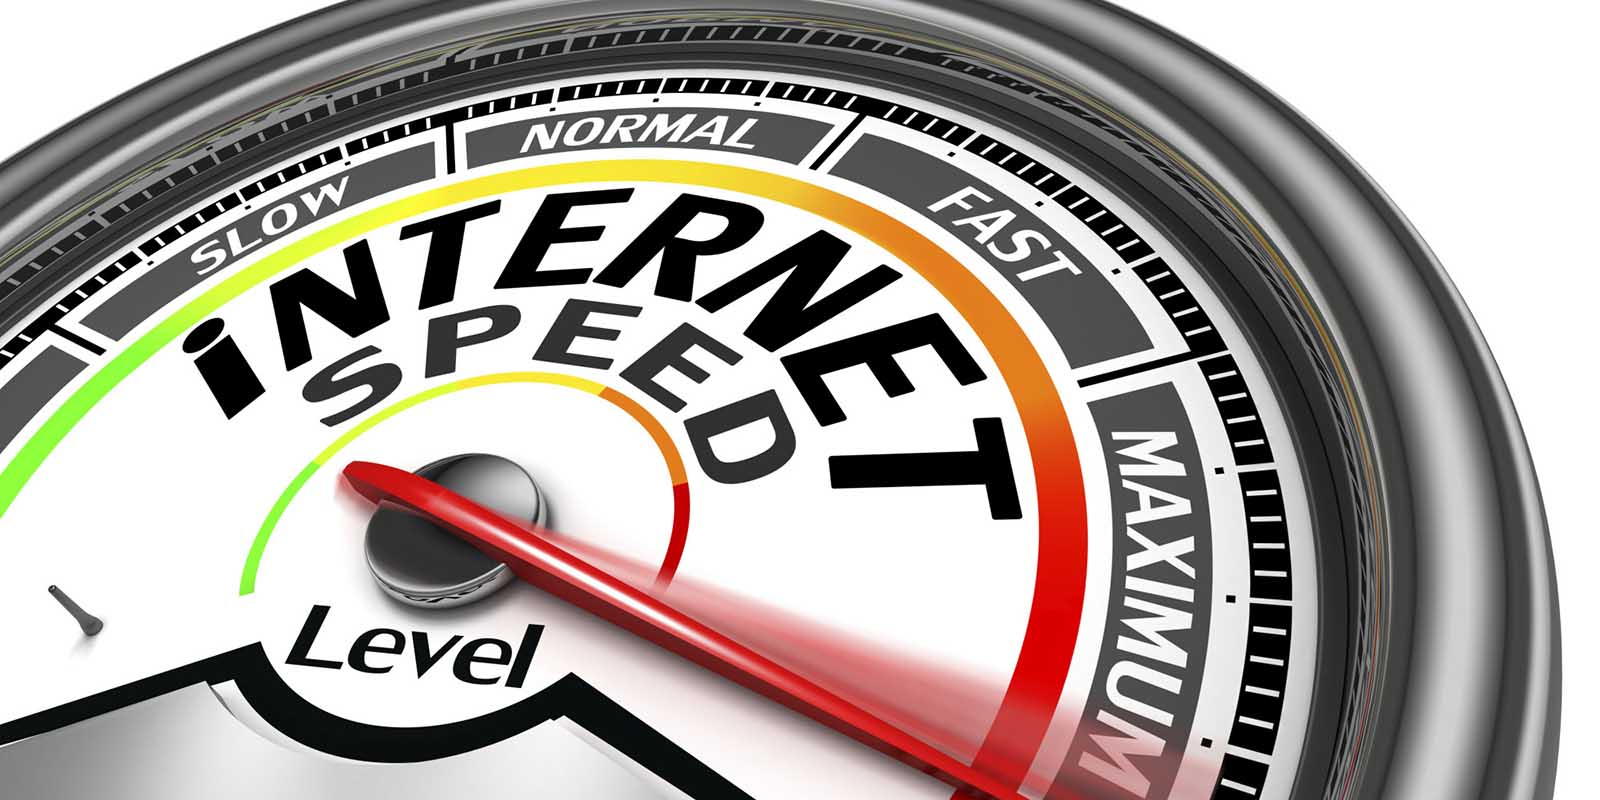 If you need a new internet package, try looking at these high-speed internet deals from Charter Internet.